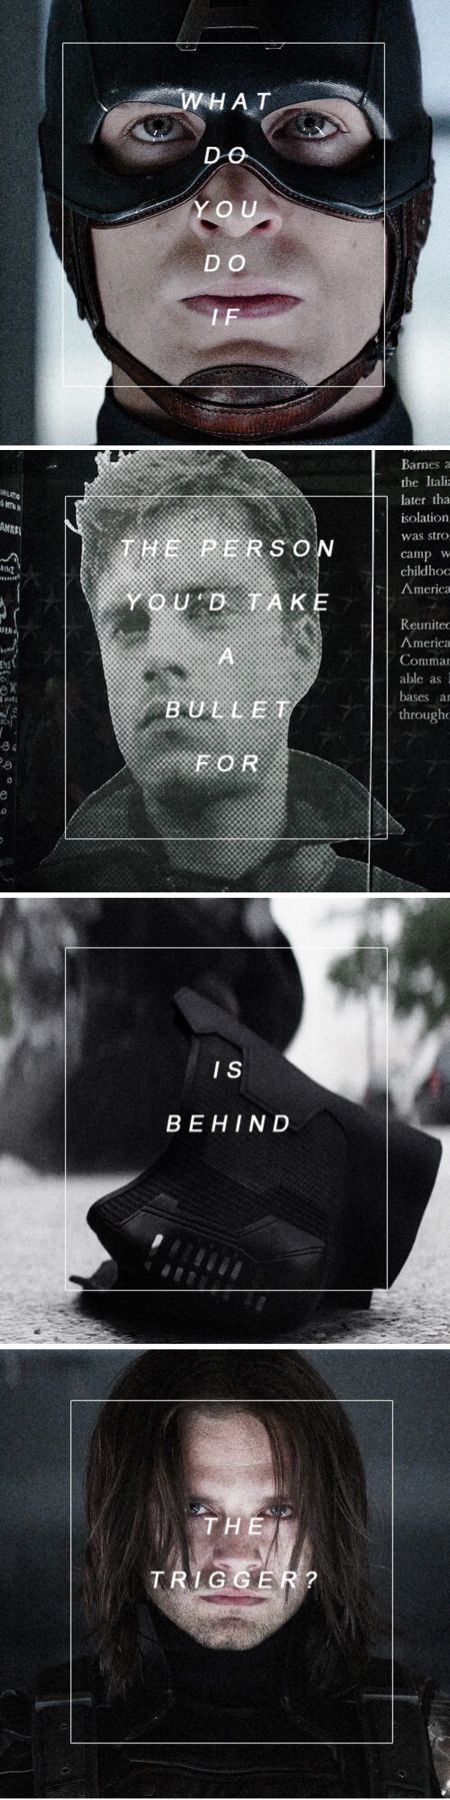 What do you do if the person you'd take a bullet for is behind the trigger?